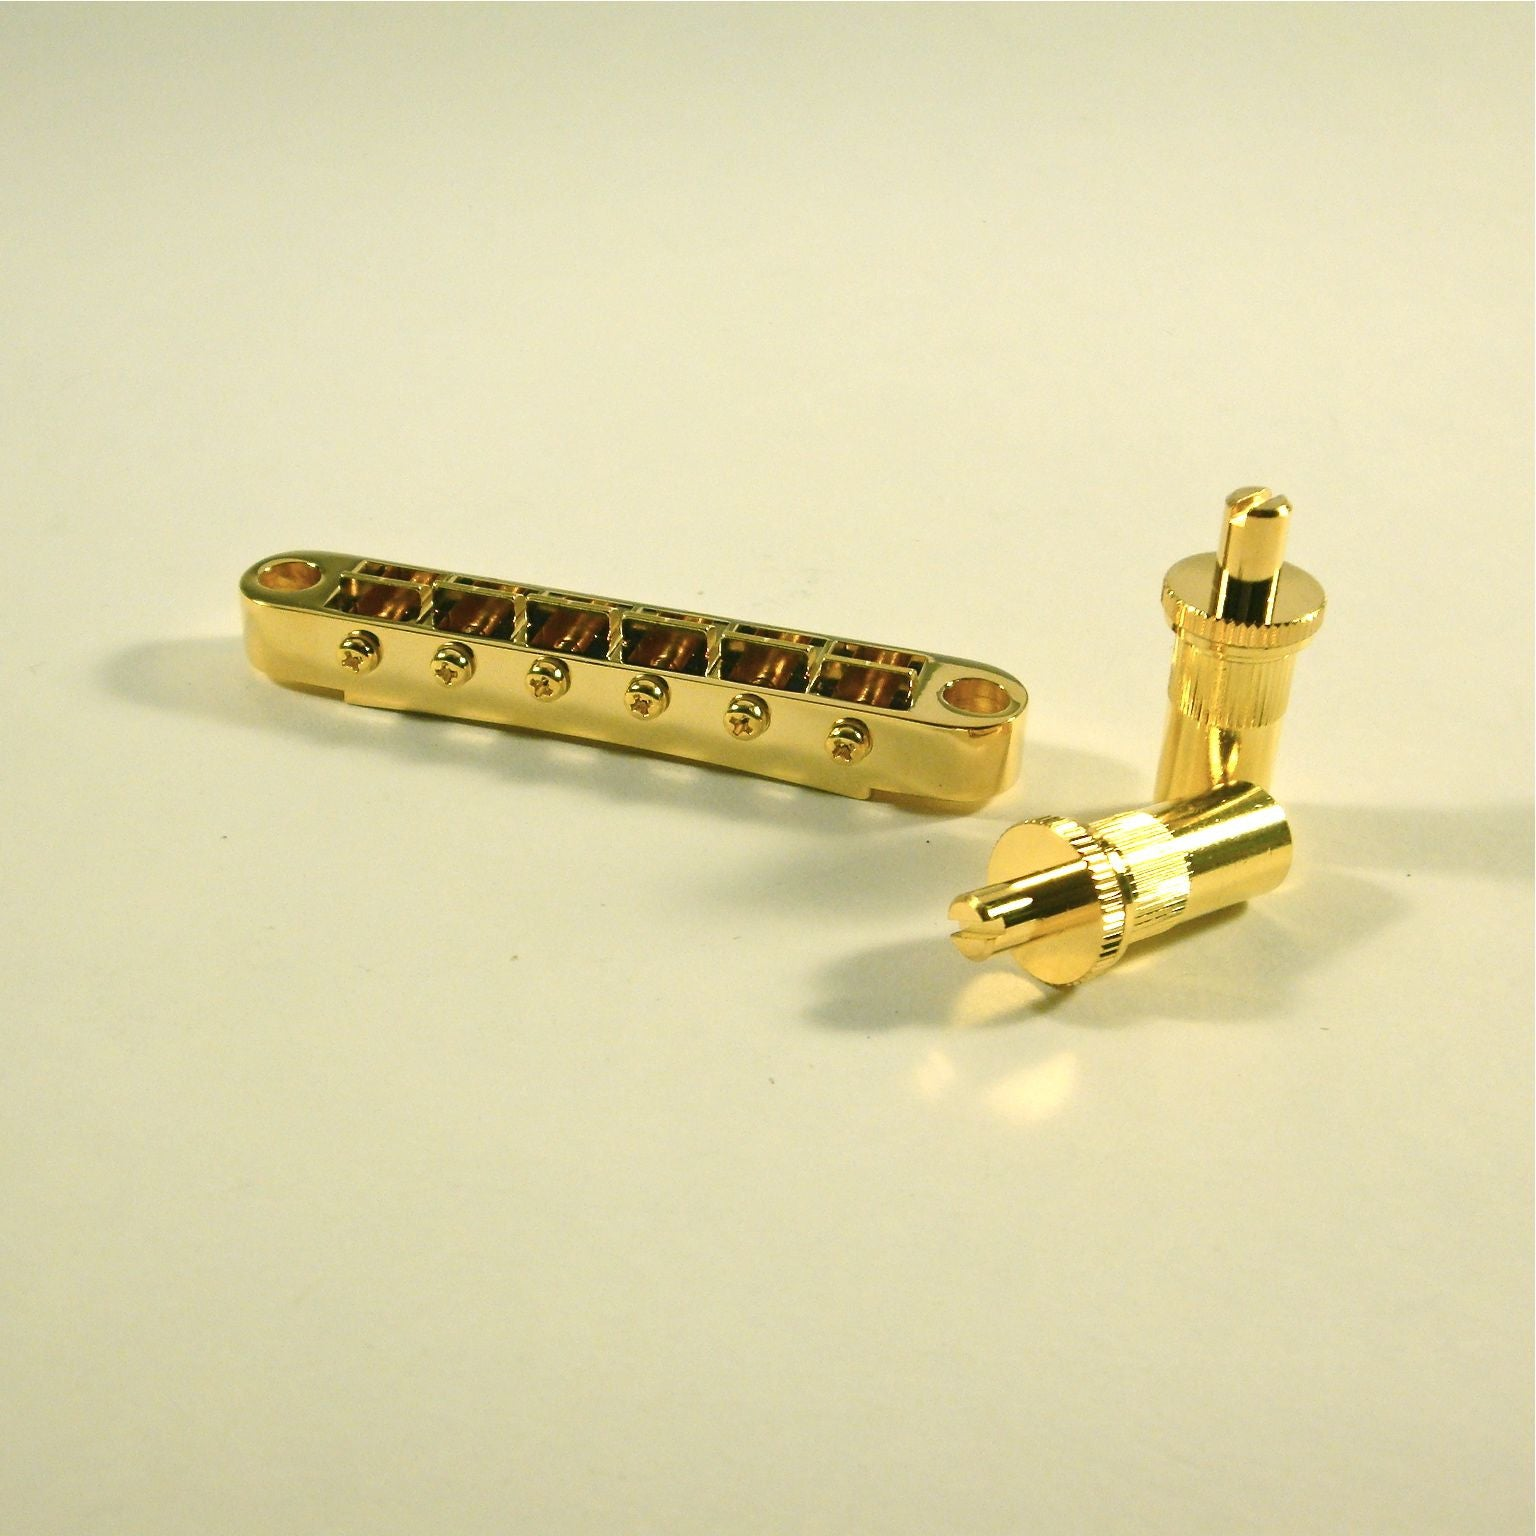 Gotoh Tune-o-matic bridge, with large studs and bushings